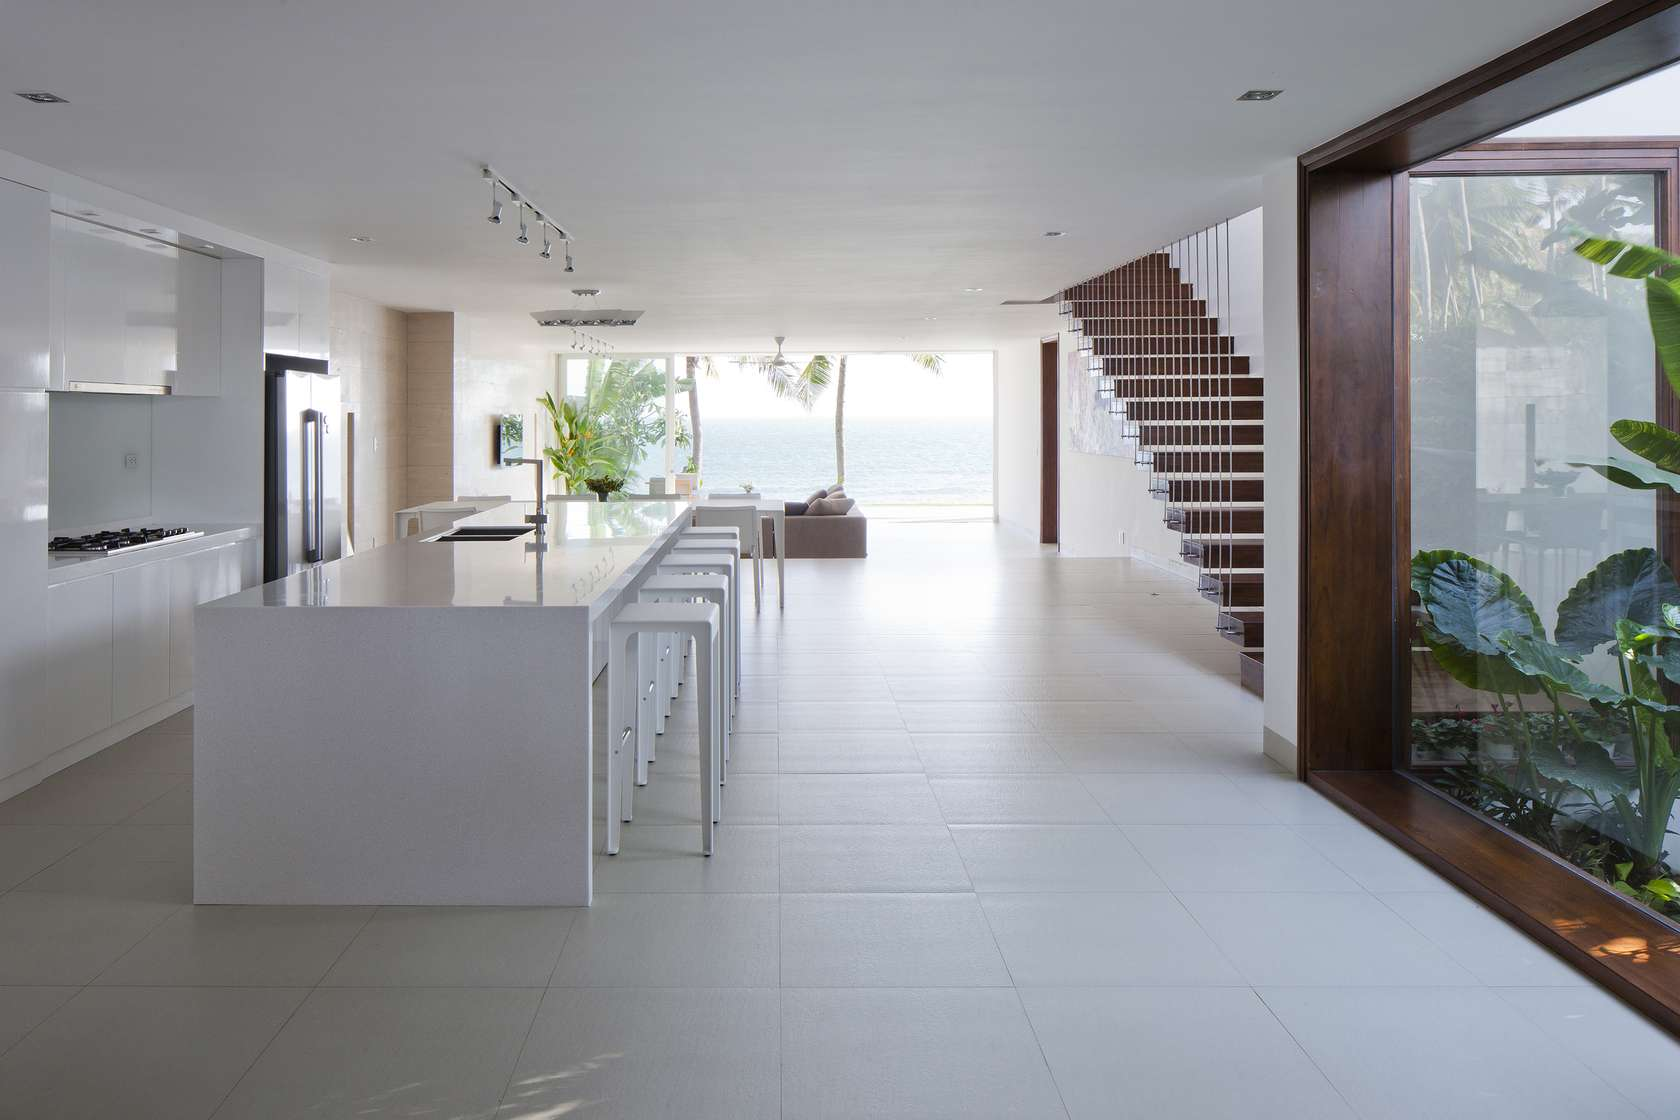 Private beach villas offer spectacular ocean views and for Kitchen simple design